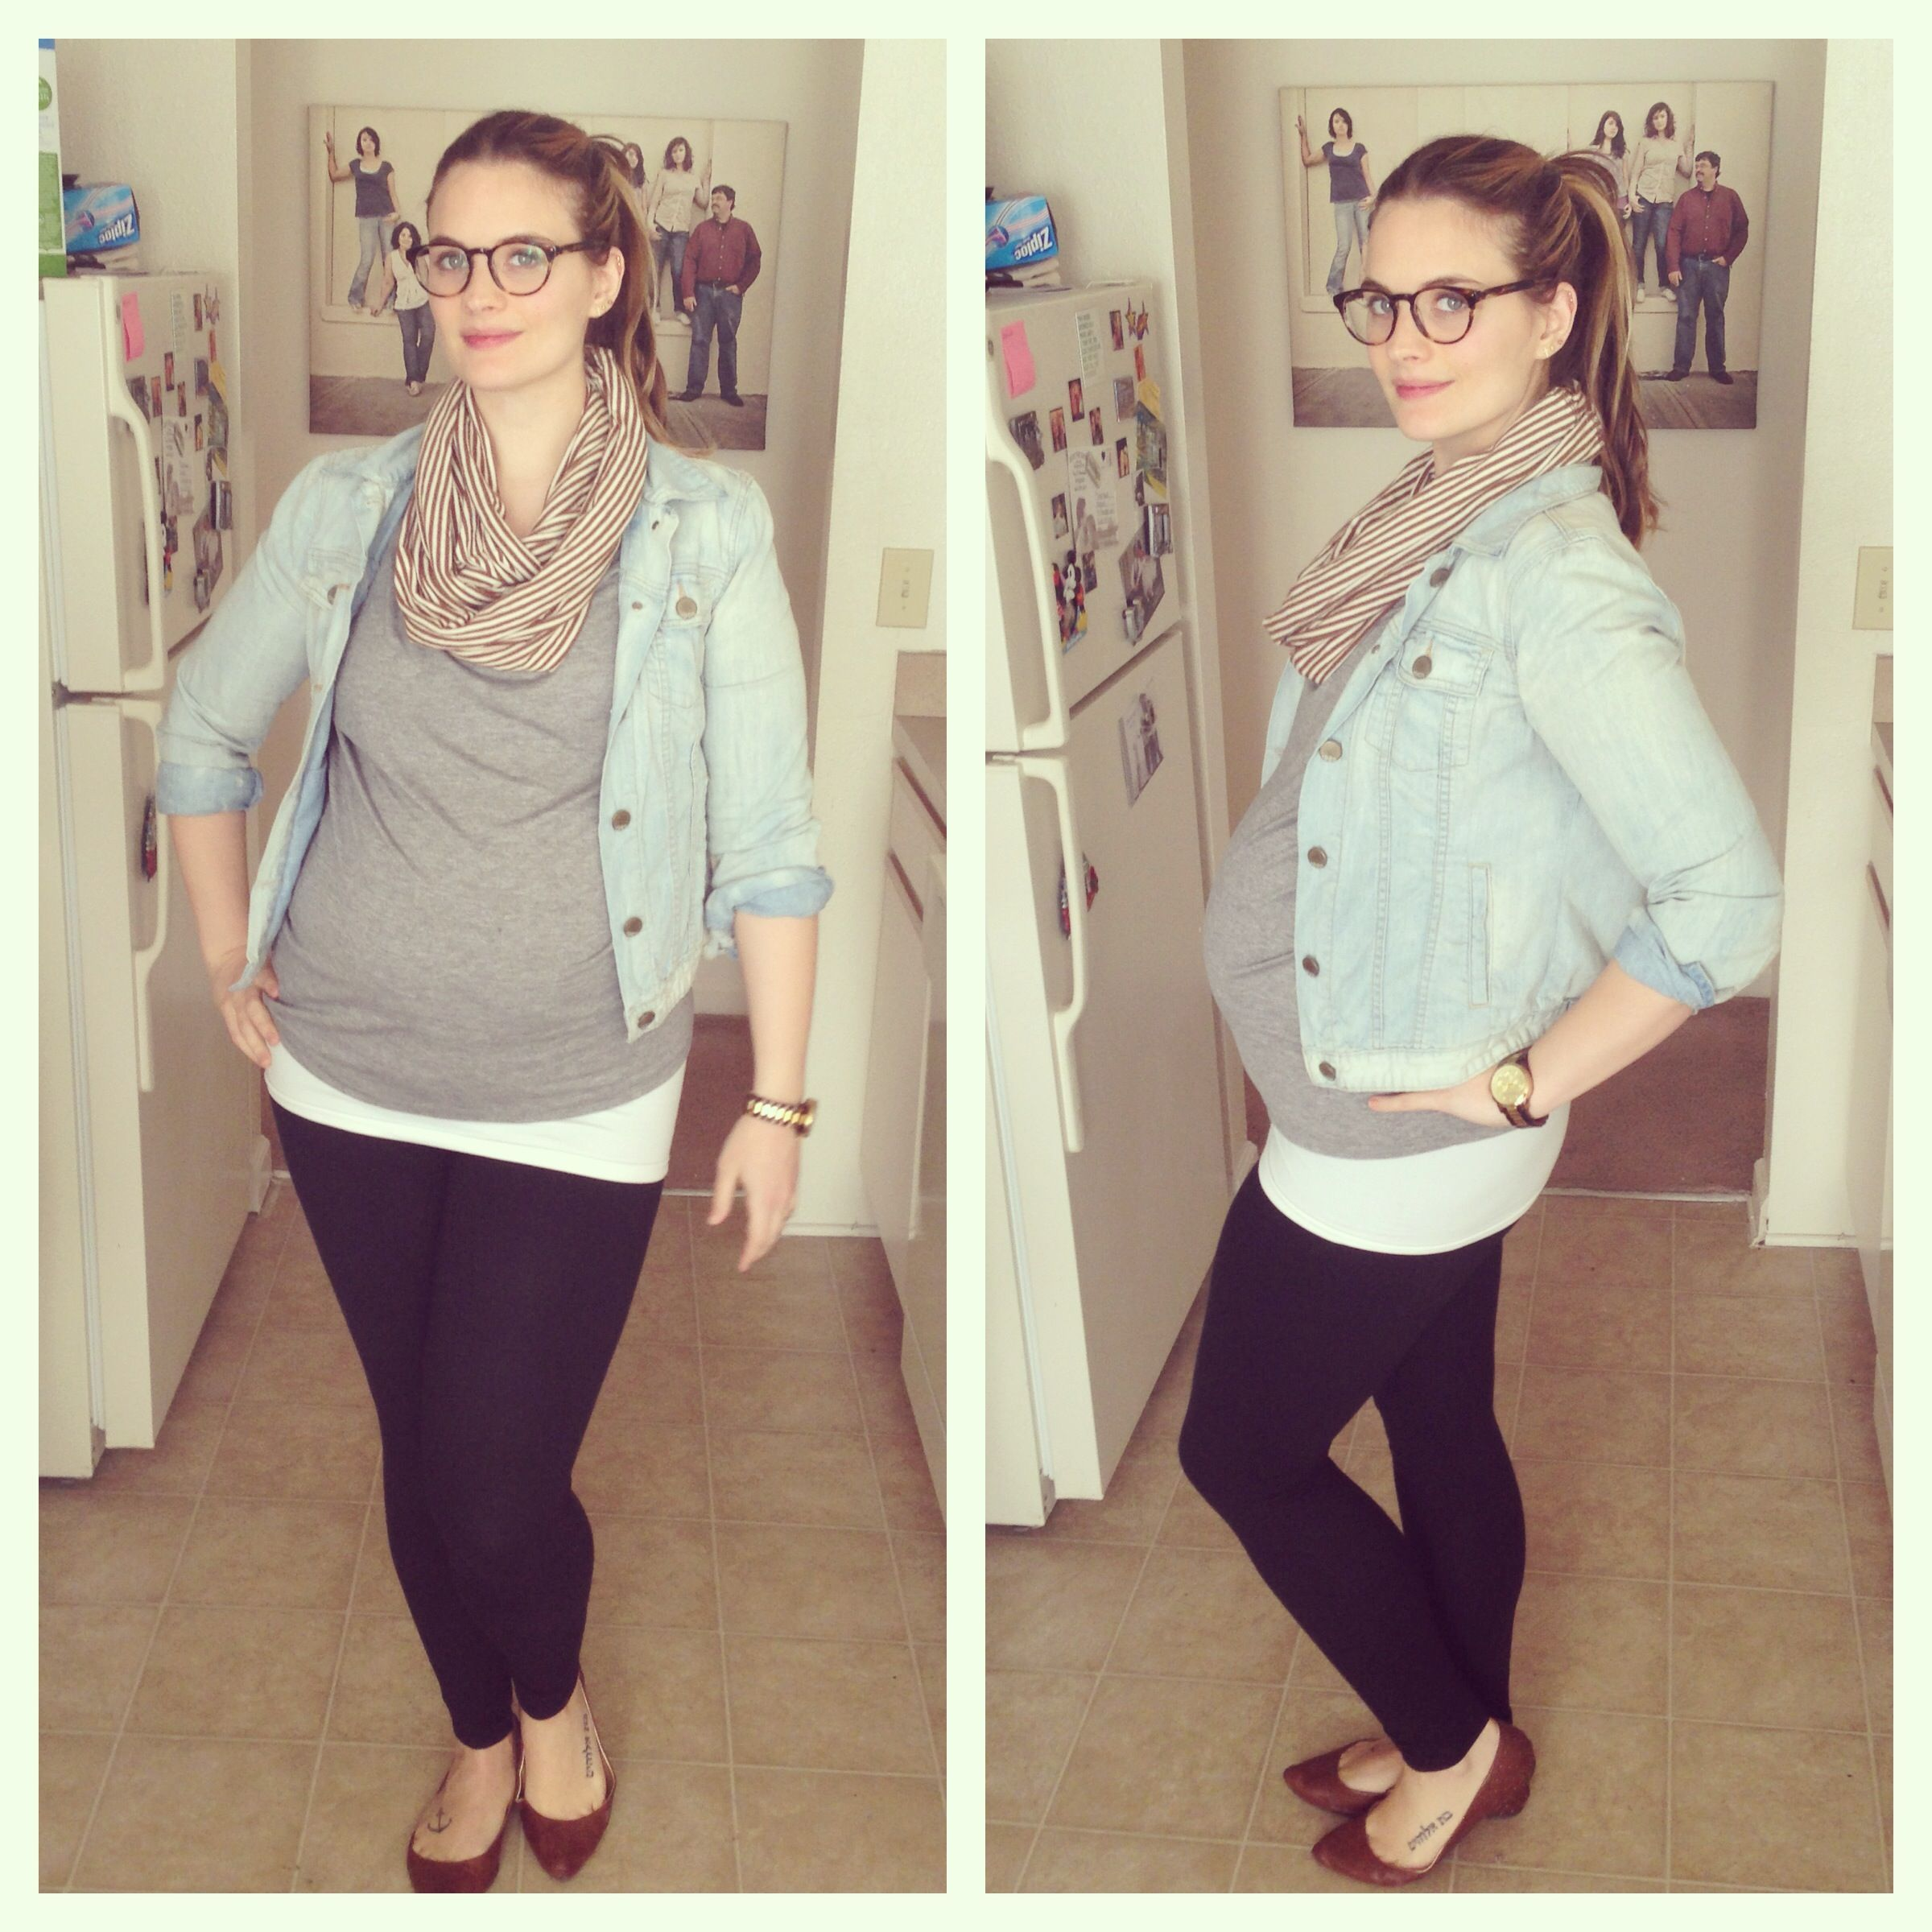 Maternity style gap maternity leggings target maternity tank maternity style gap maternity leggings target maternity tank gap shirt gap ombrellifo Image collections